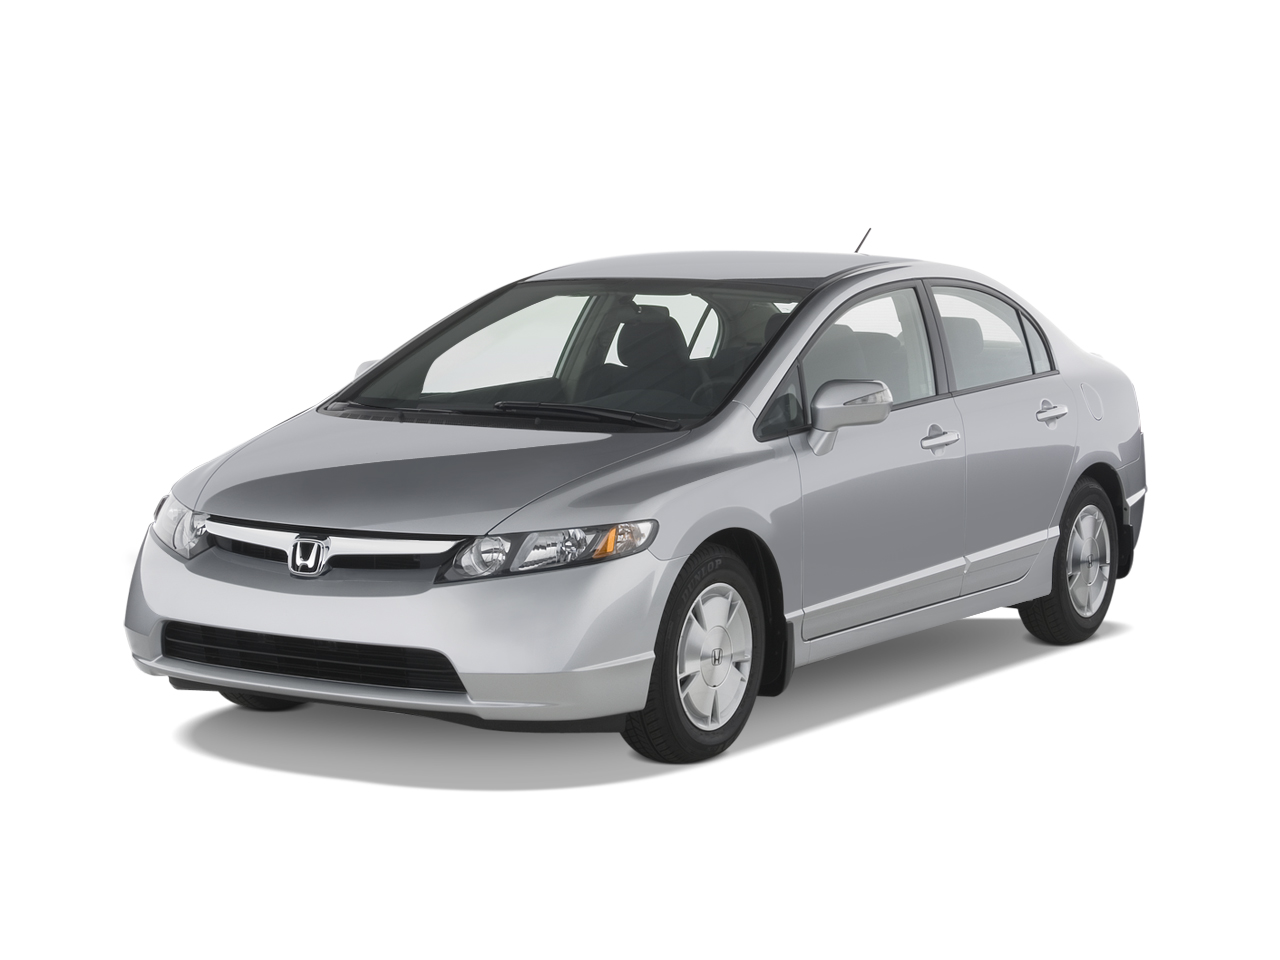 Why An Old Used Honda Civic Hybrid Is Good For Your Health